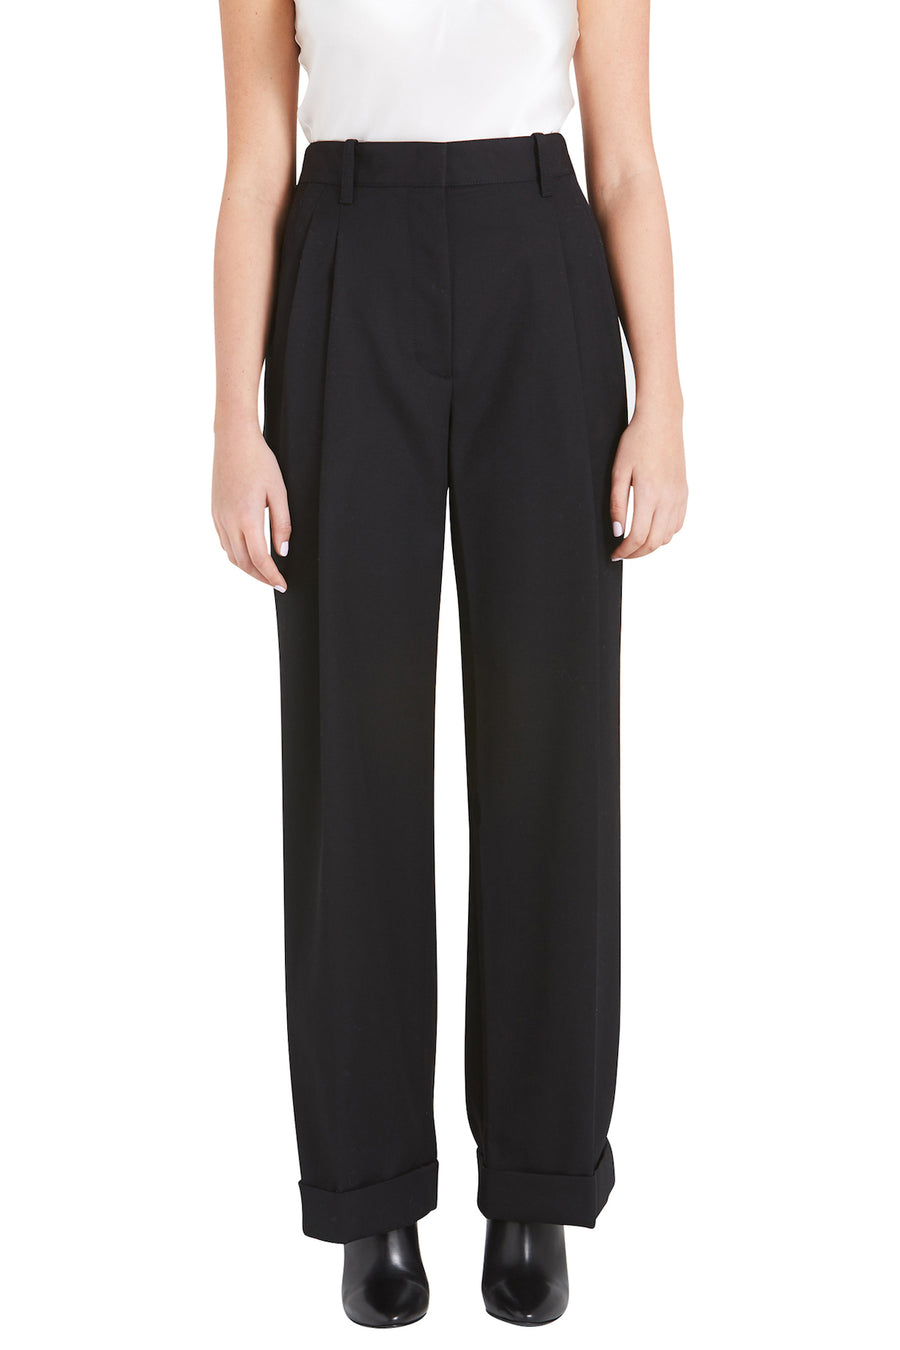 BAGGY TAILORED PANT